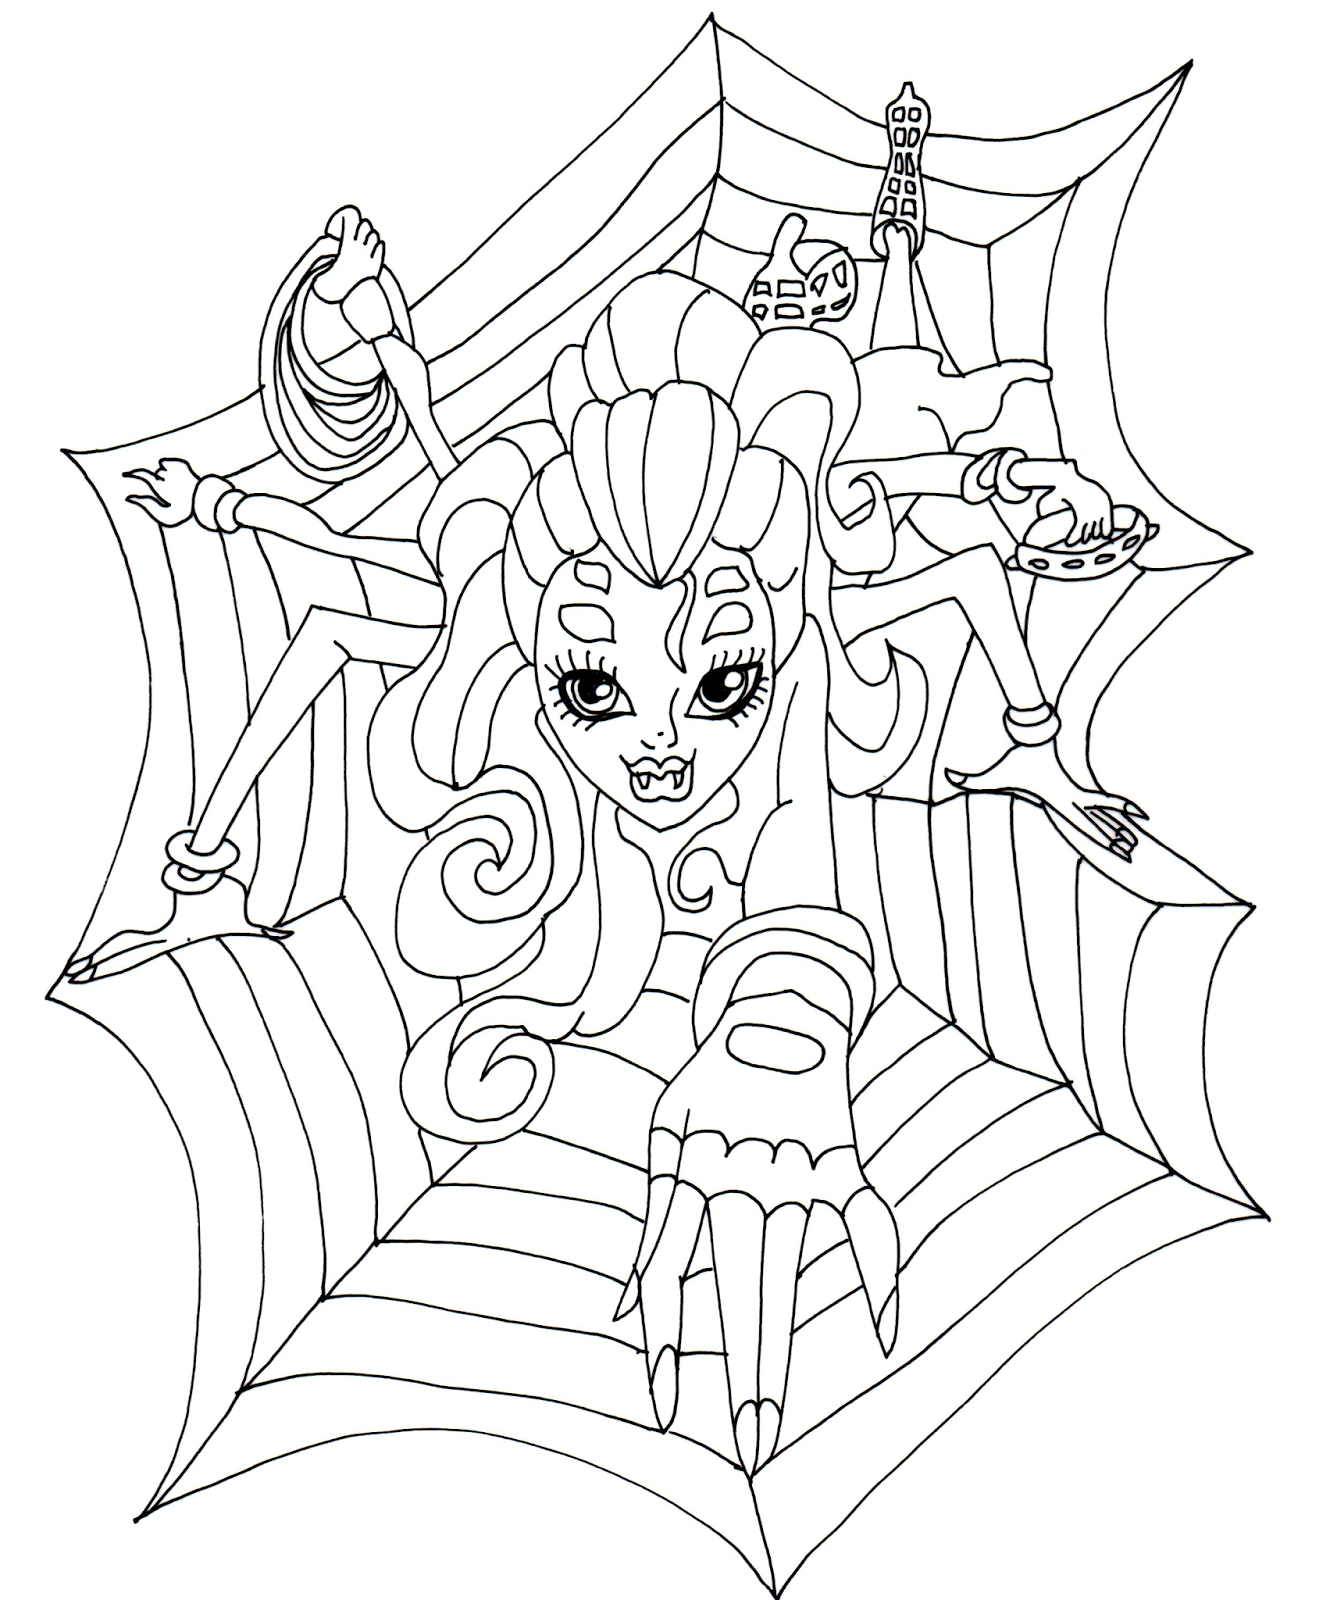 Free Printable Monster High Coloring Pages Wydowna As Webarella Monster High Coloring Page